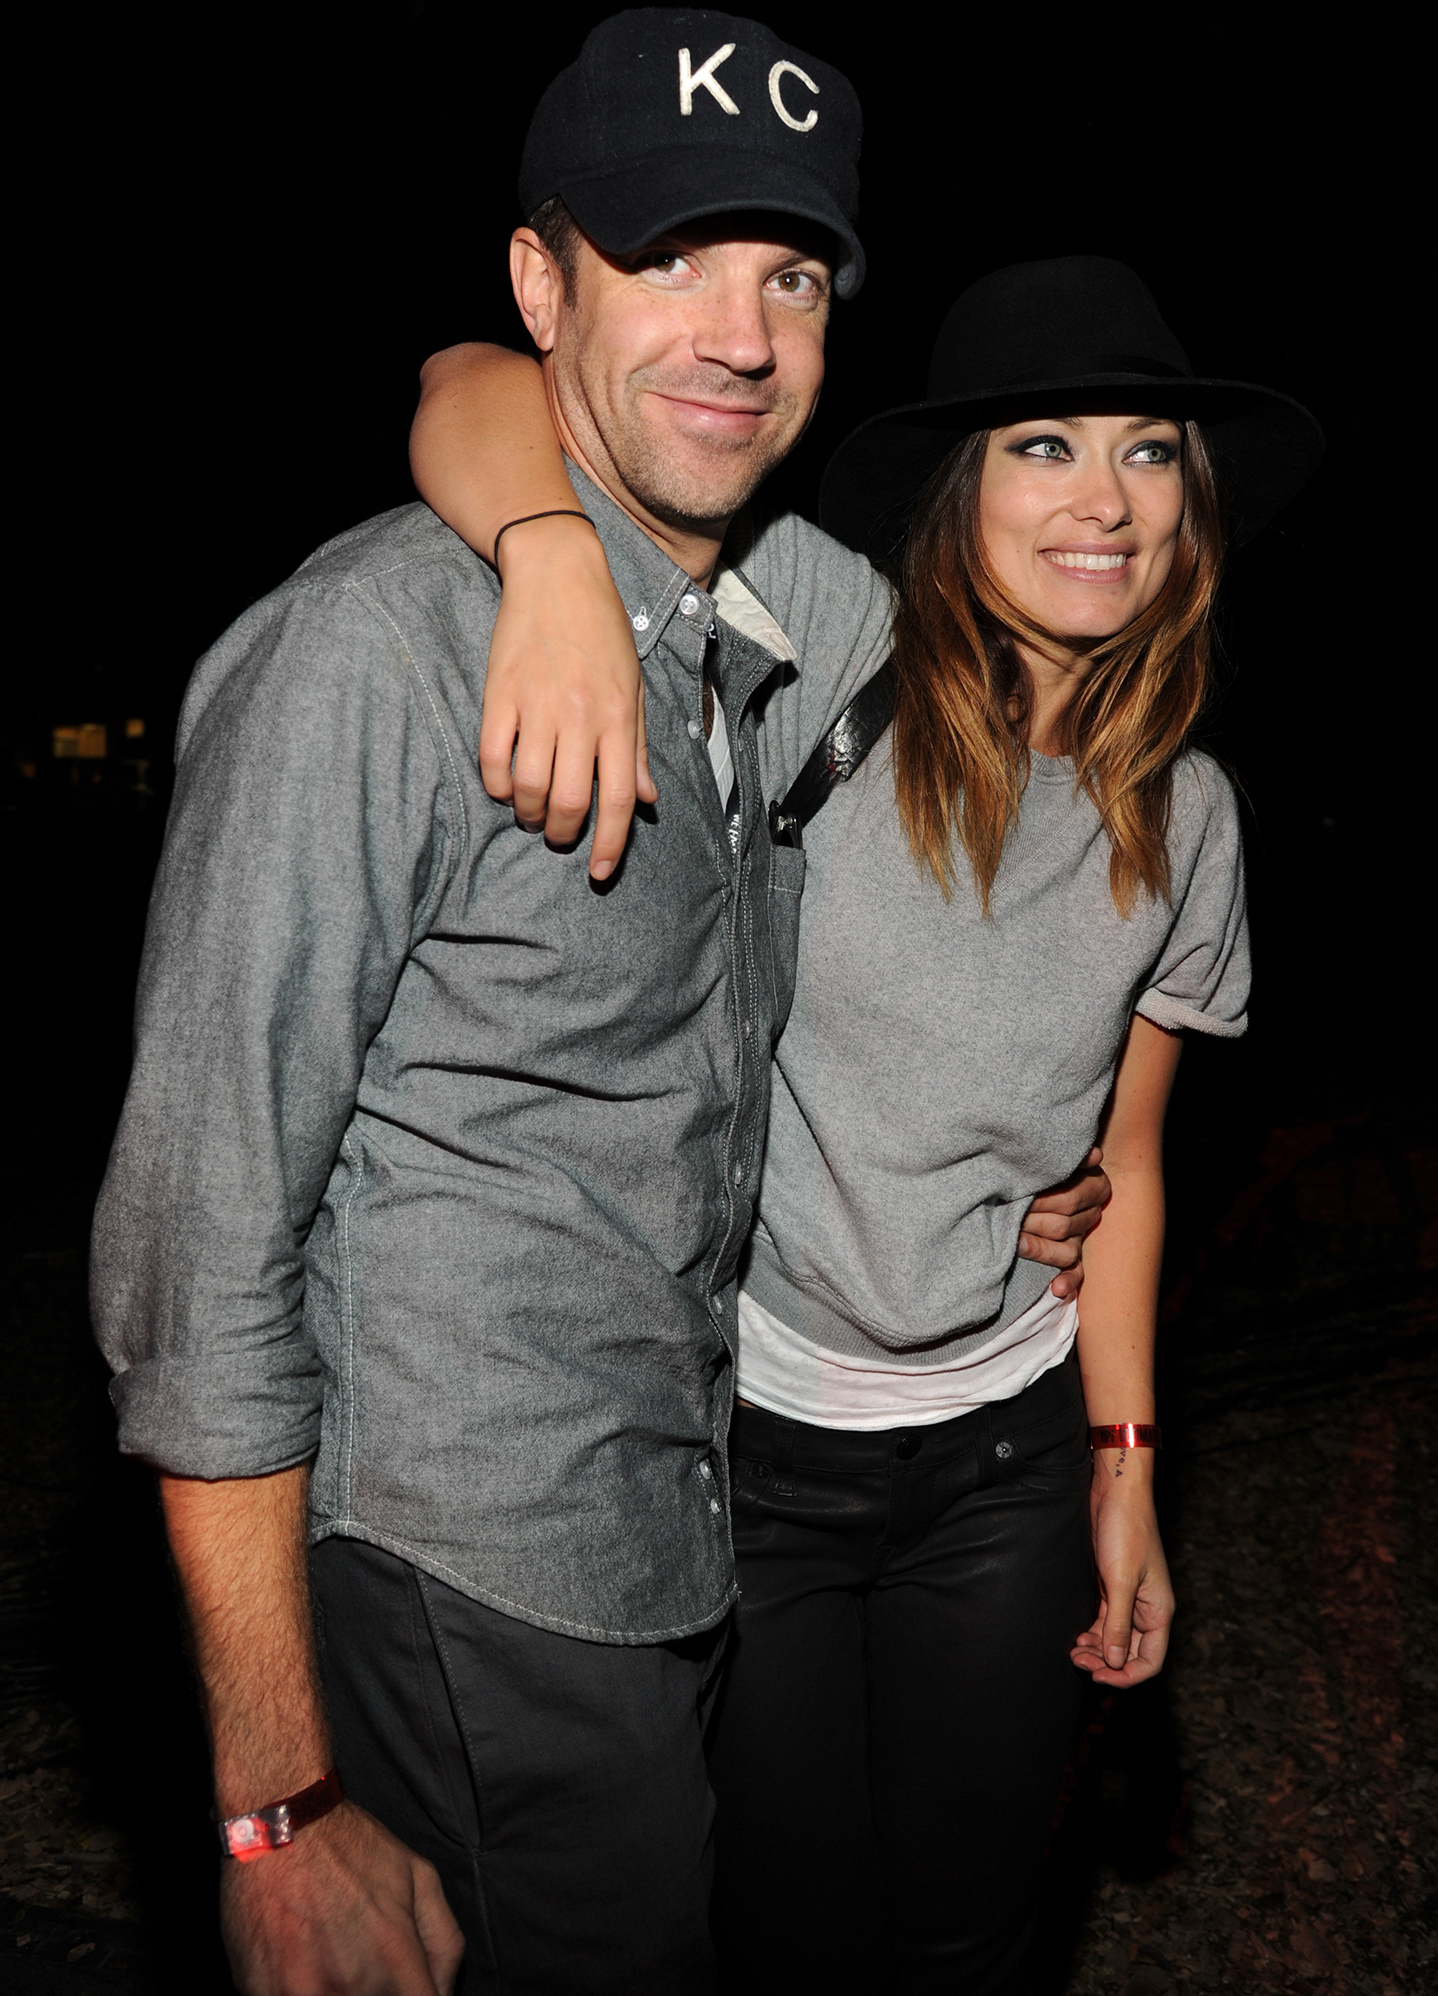 Jason Sudeikis and Olivia Wilde were inseparable at a concert in NYC on September 28. (Getty Images)